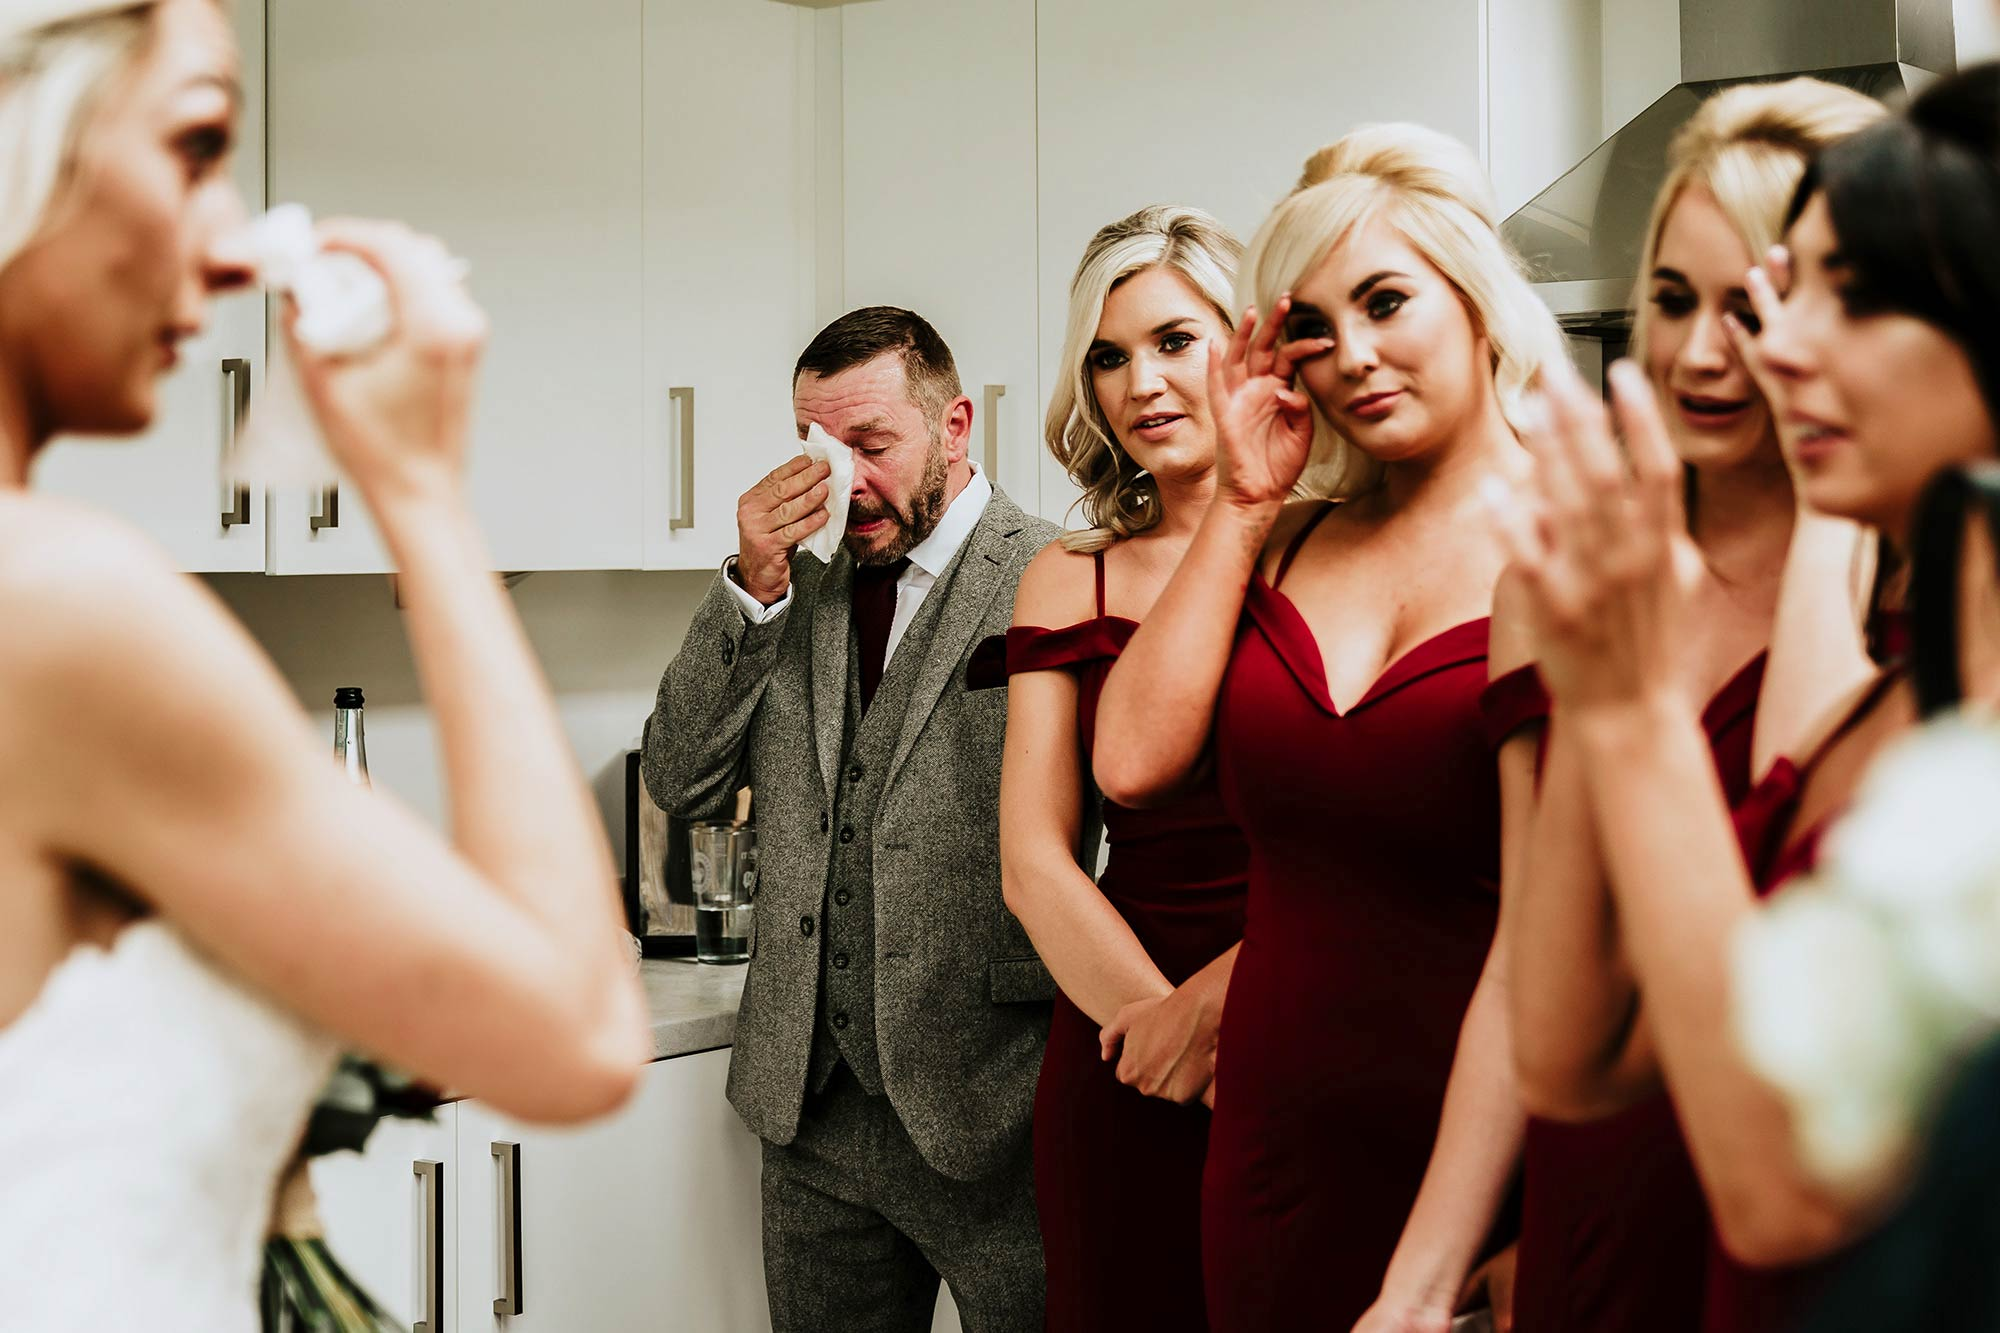 Andrew Keher Liverpool Wedding Photographer 5 2000 wide